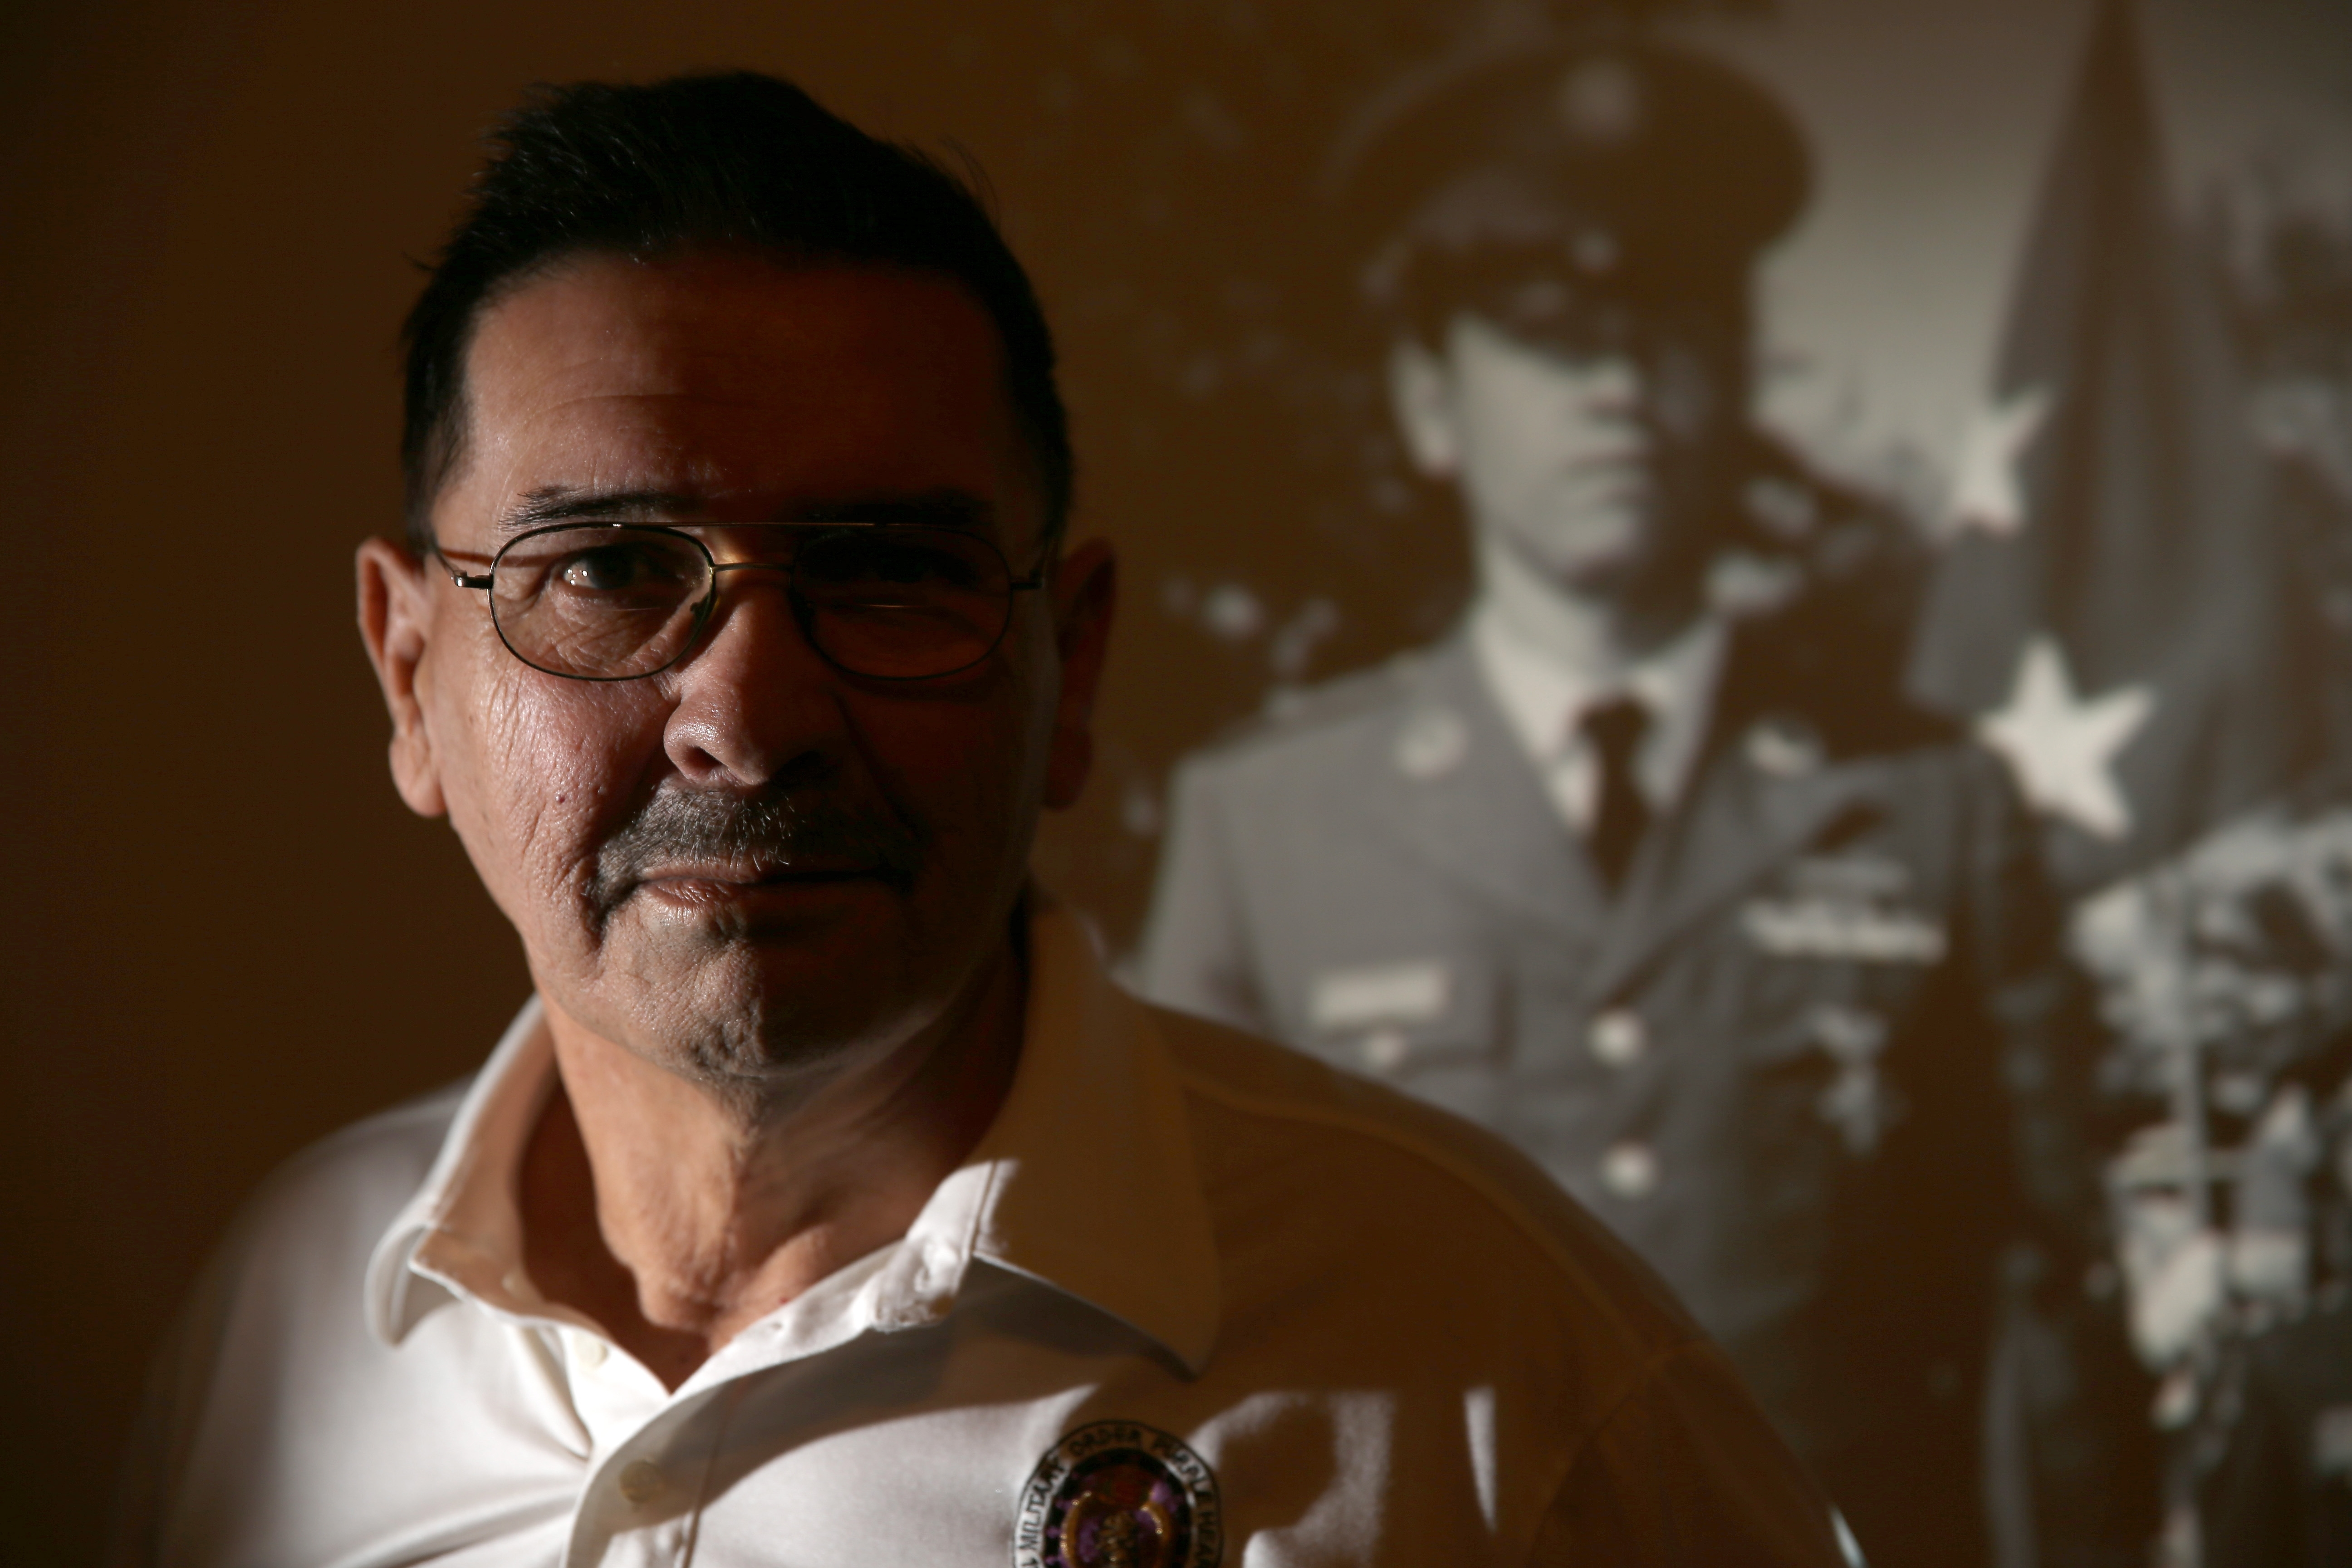 U.S. Army Specialist Four Santiago J. Erevia, a Vietnam War veteran, will receive the Medal of Honor on Tuesday.